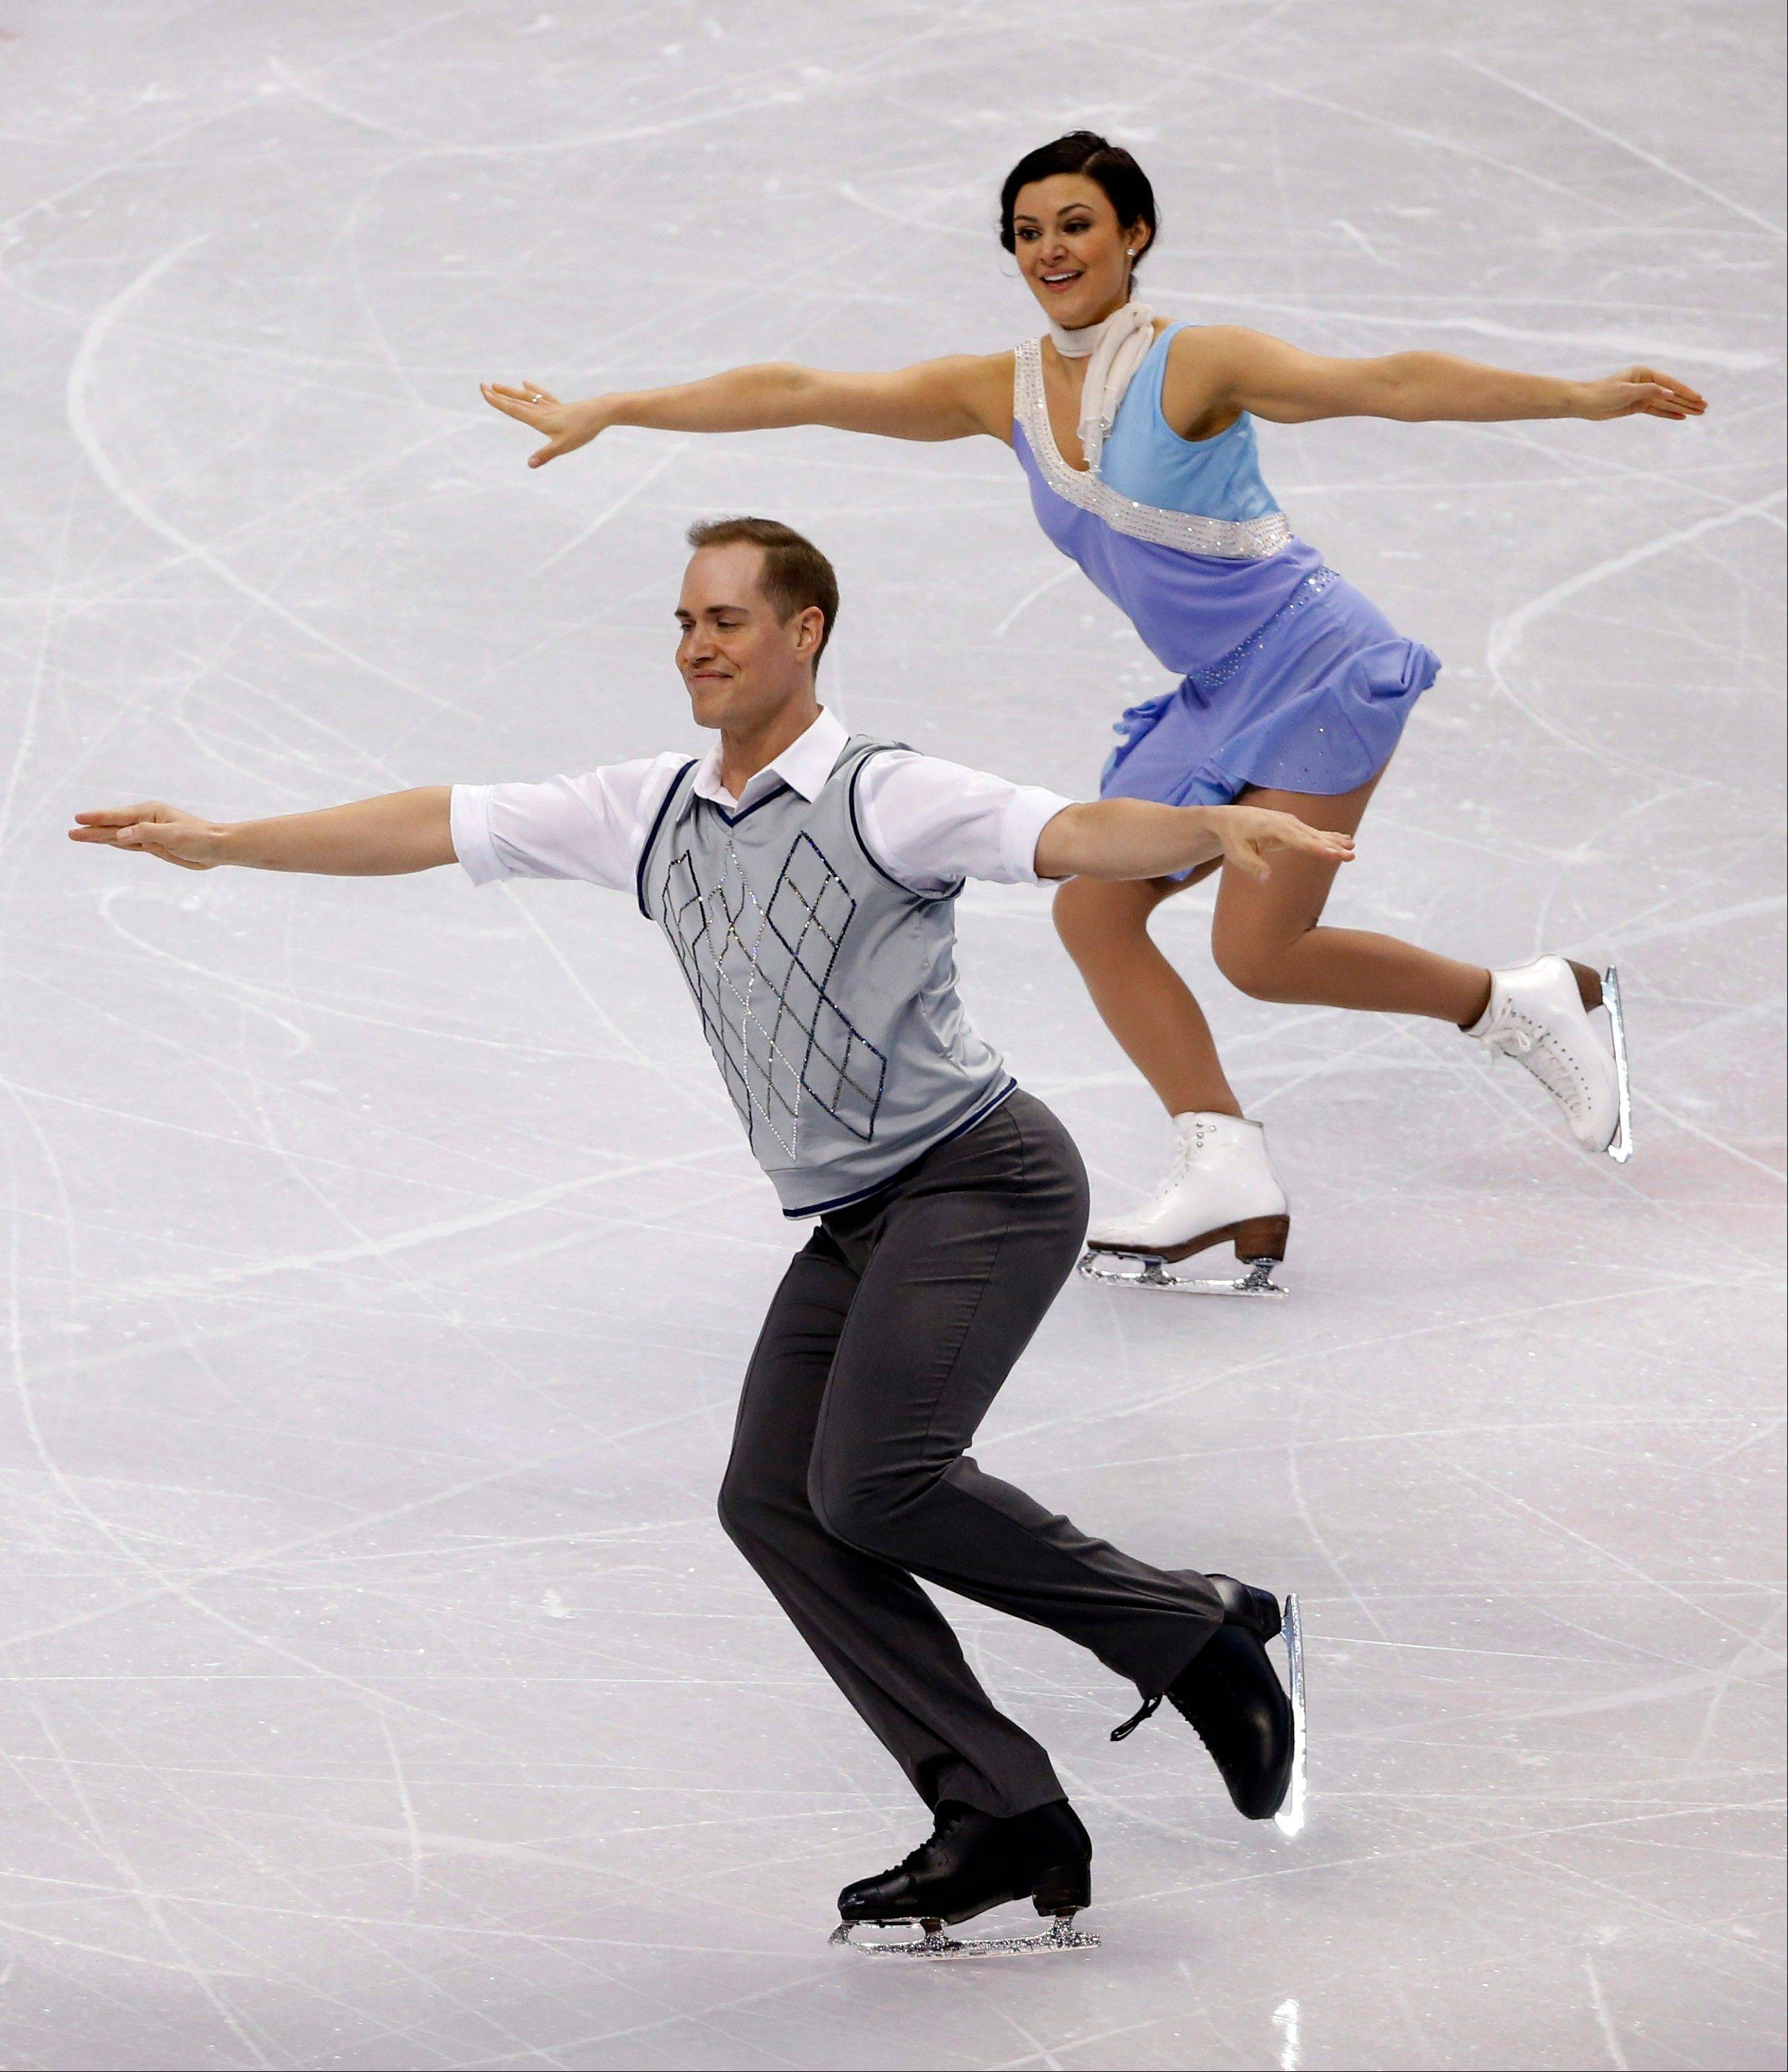 Kristen Nardozzi of Naperville and her partner, Nick Traxler, skate Friday at the U.S. Figure Skating Championships in Boston. They were in 14th place after the short program.